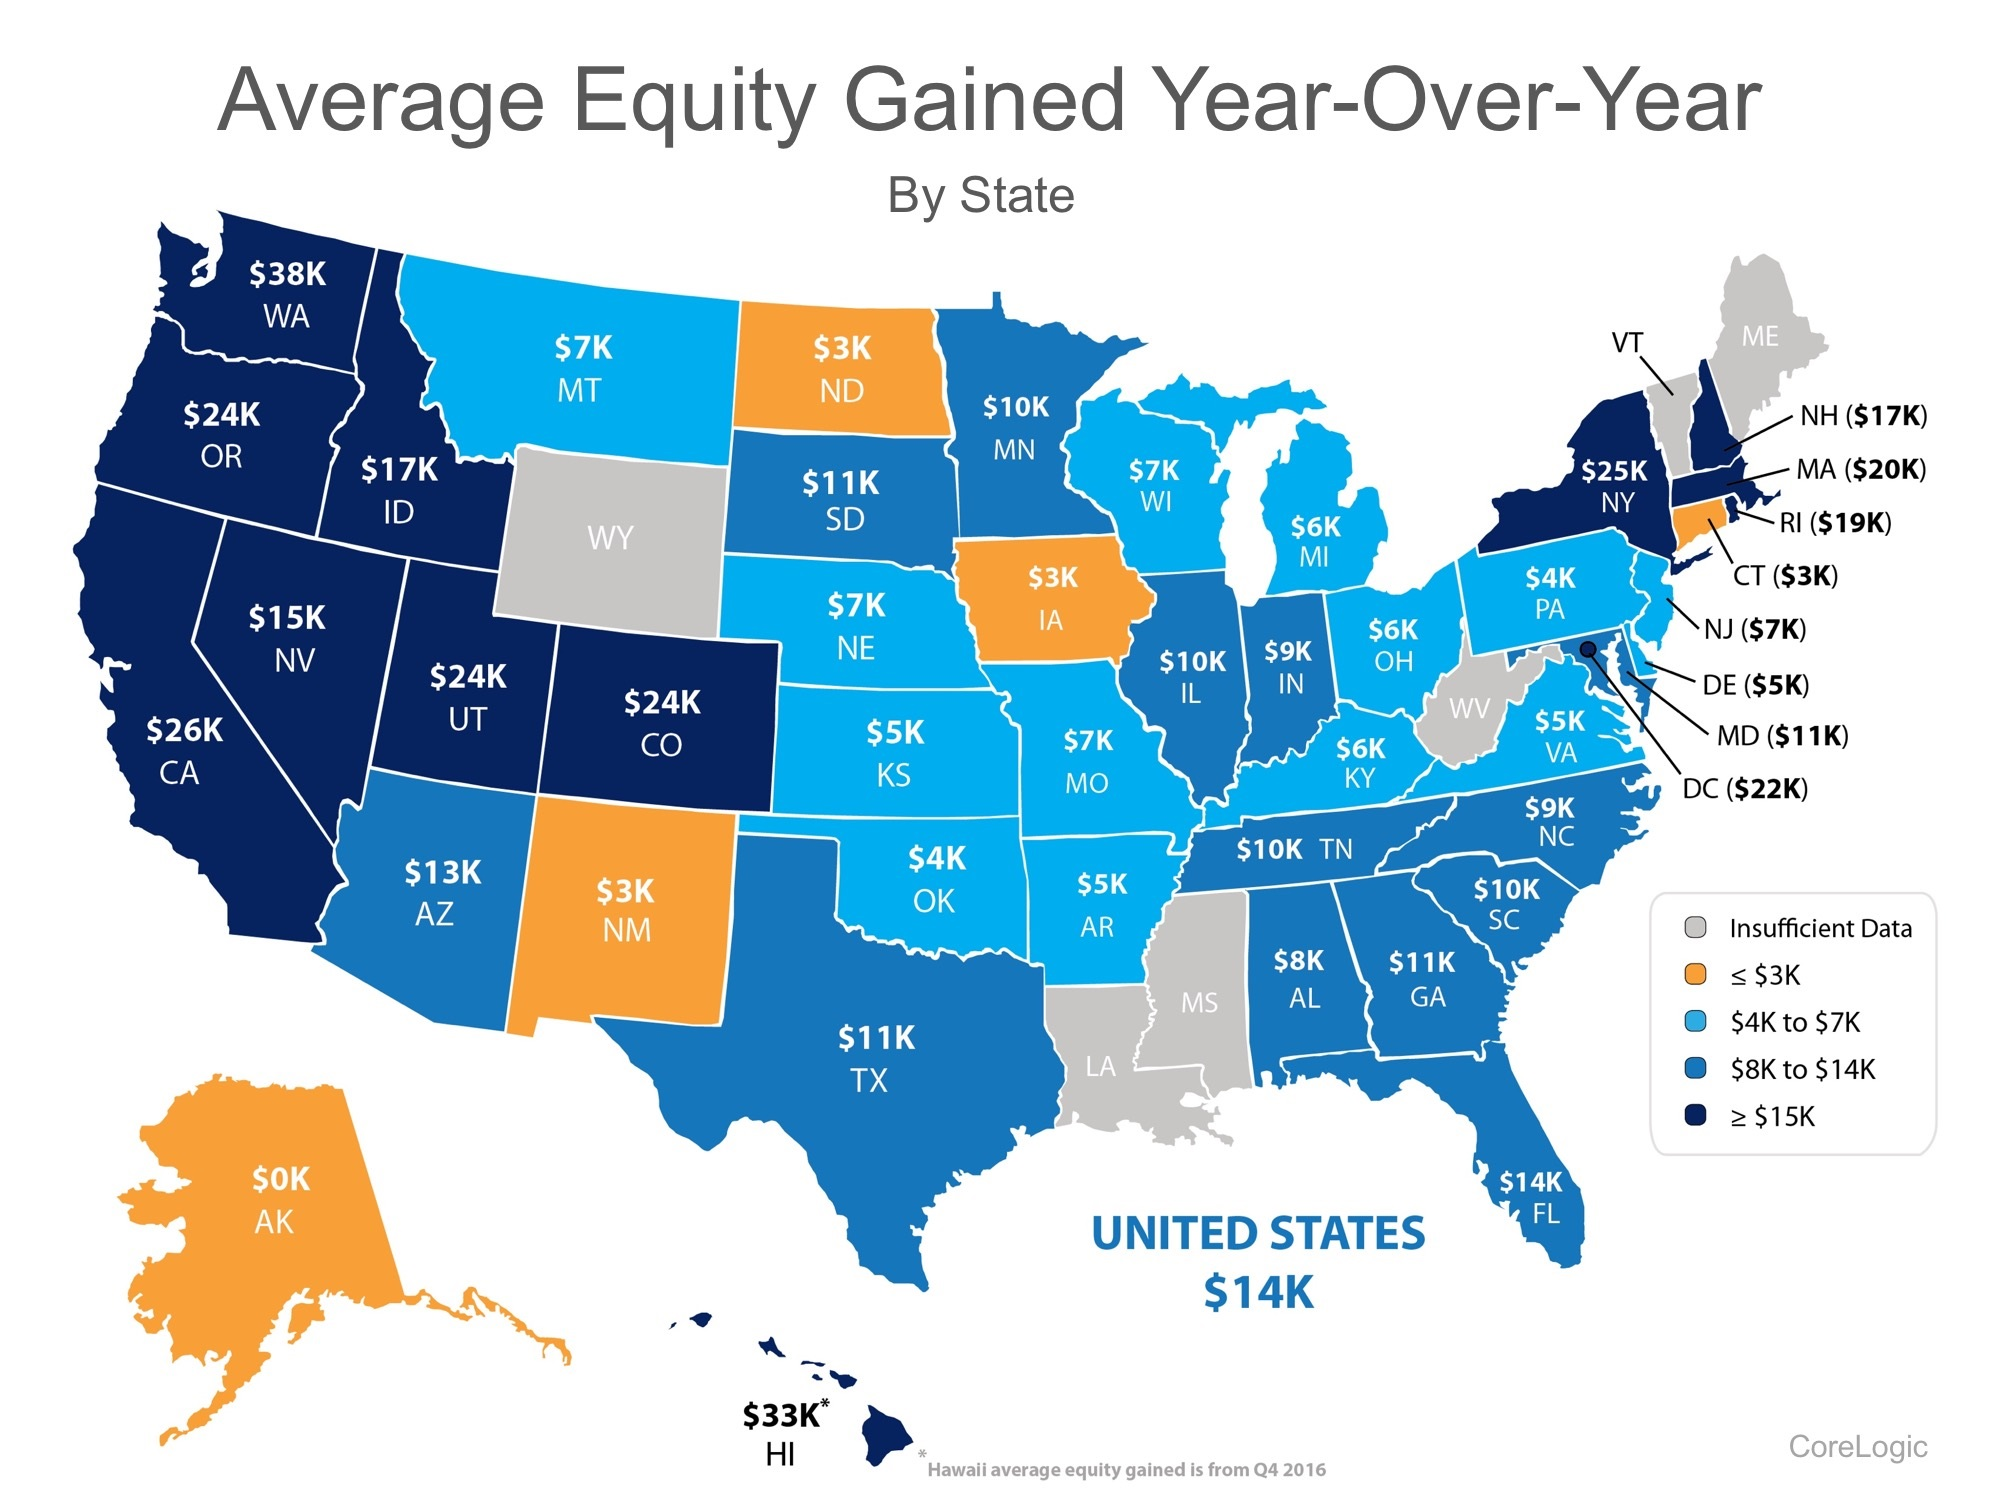 Average equity gained by state 2016-2017